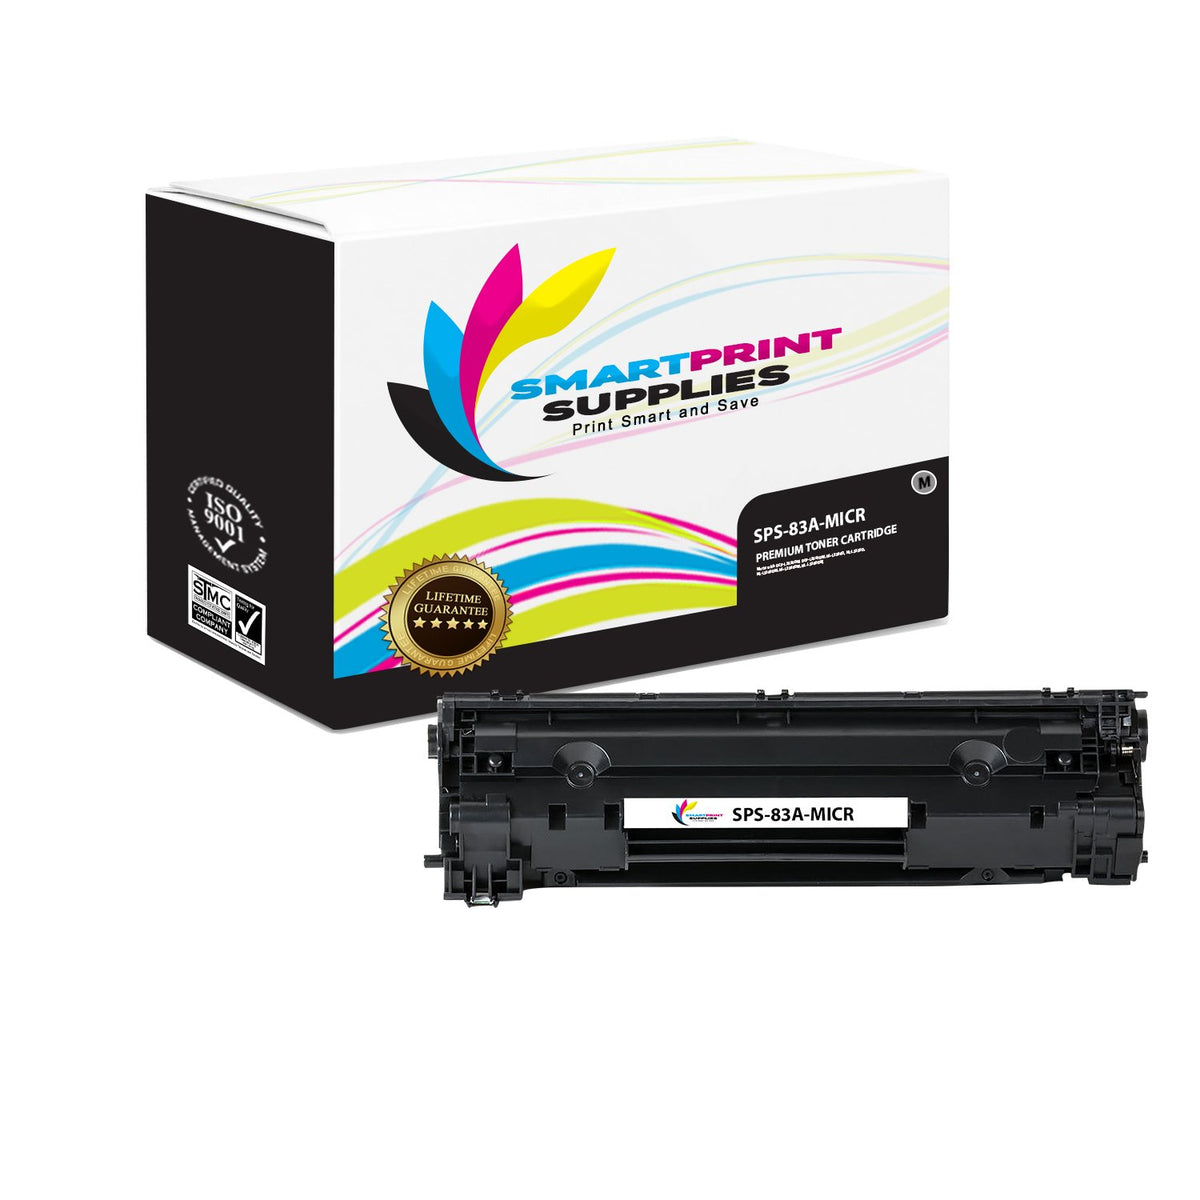 Black CF283A Printel Brand New Replacement Toner Cartridge for HP 83A 2 Pack